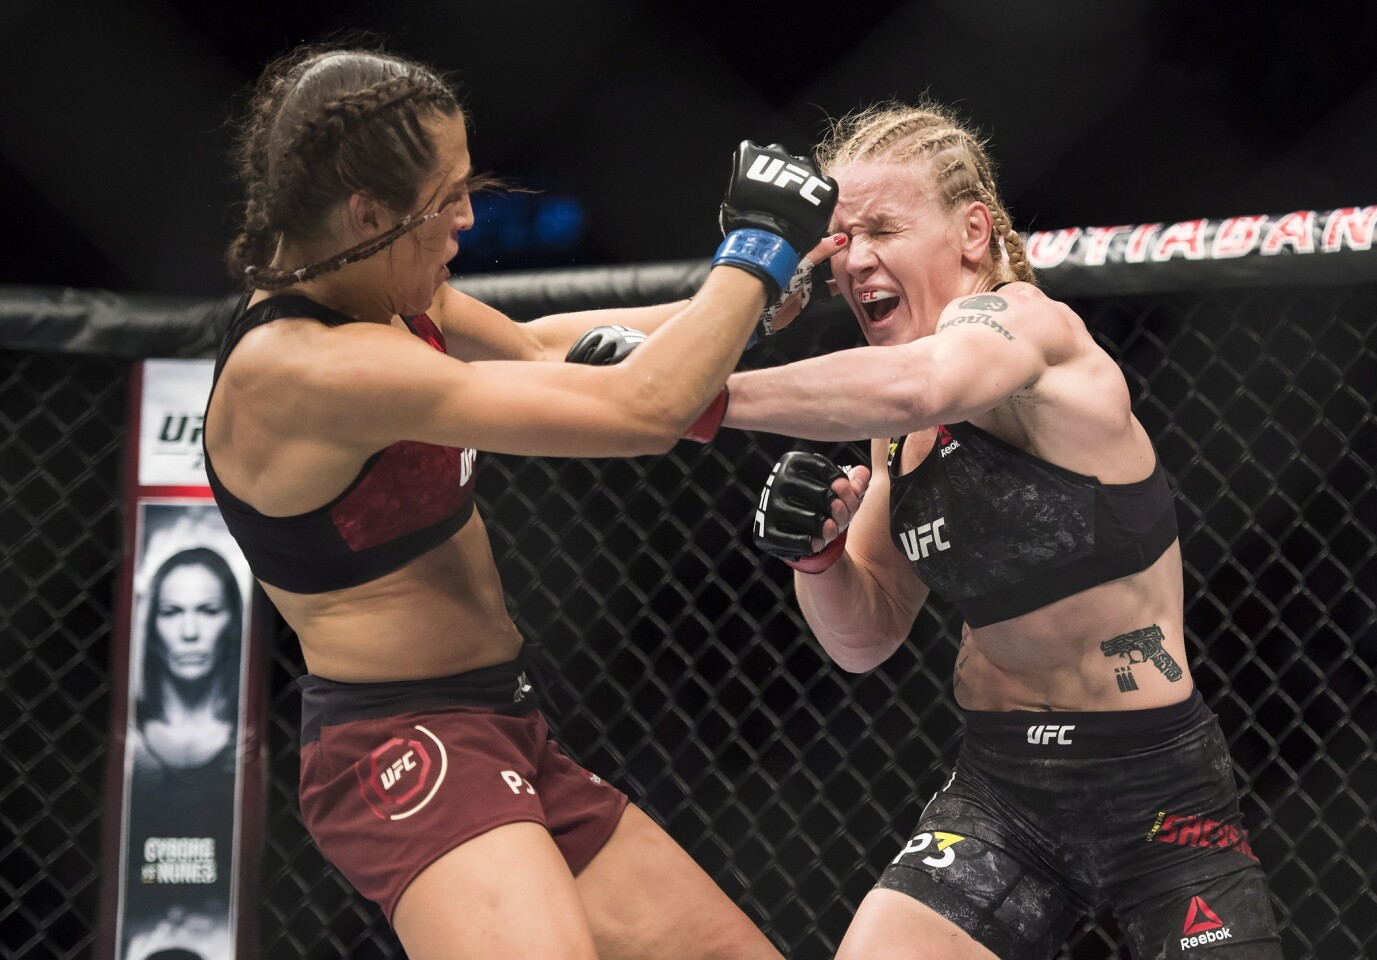 Valentina Shevchenko, right, fights Joanna Jedrzejczyk during a women's flyweight mixed martial arts bout at UFC 231 in Toronto on Saturday, Dec. 8, 2018. (Nathan Denette/The Canadian Press via AP)